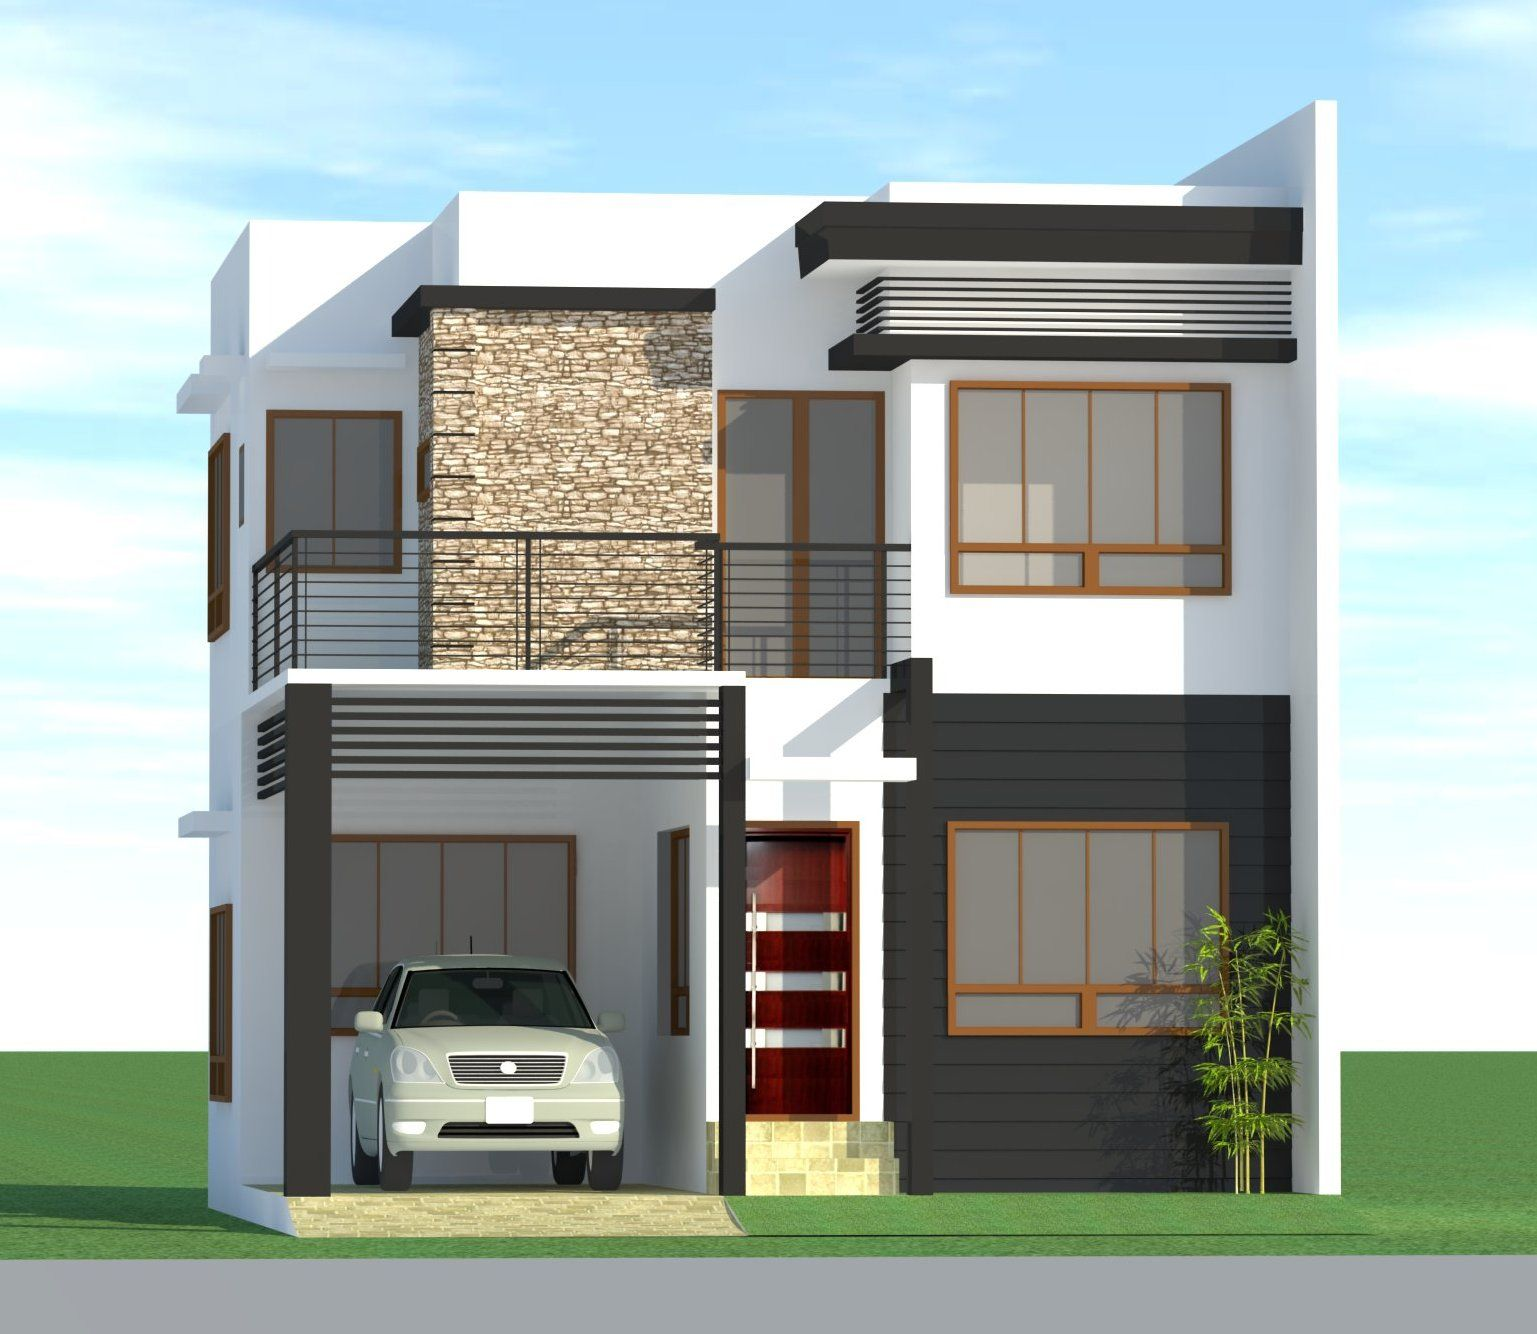 Philippines house design images 3 home design ideas for Filipino small house design